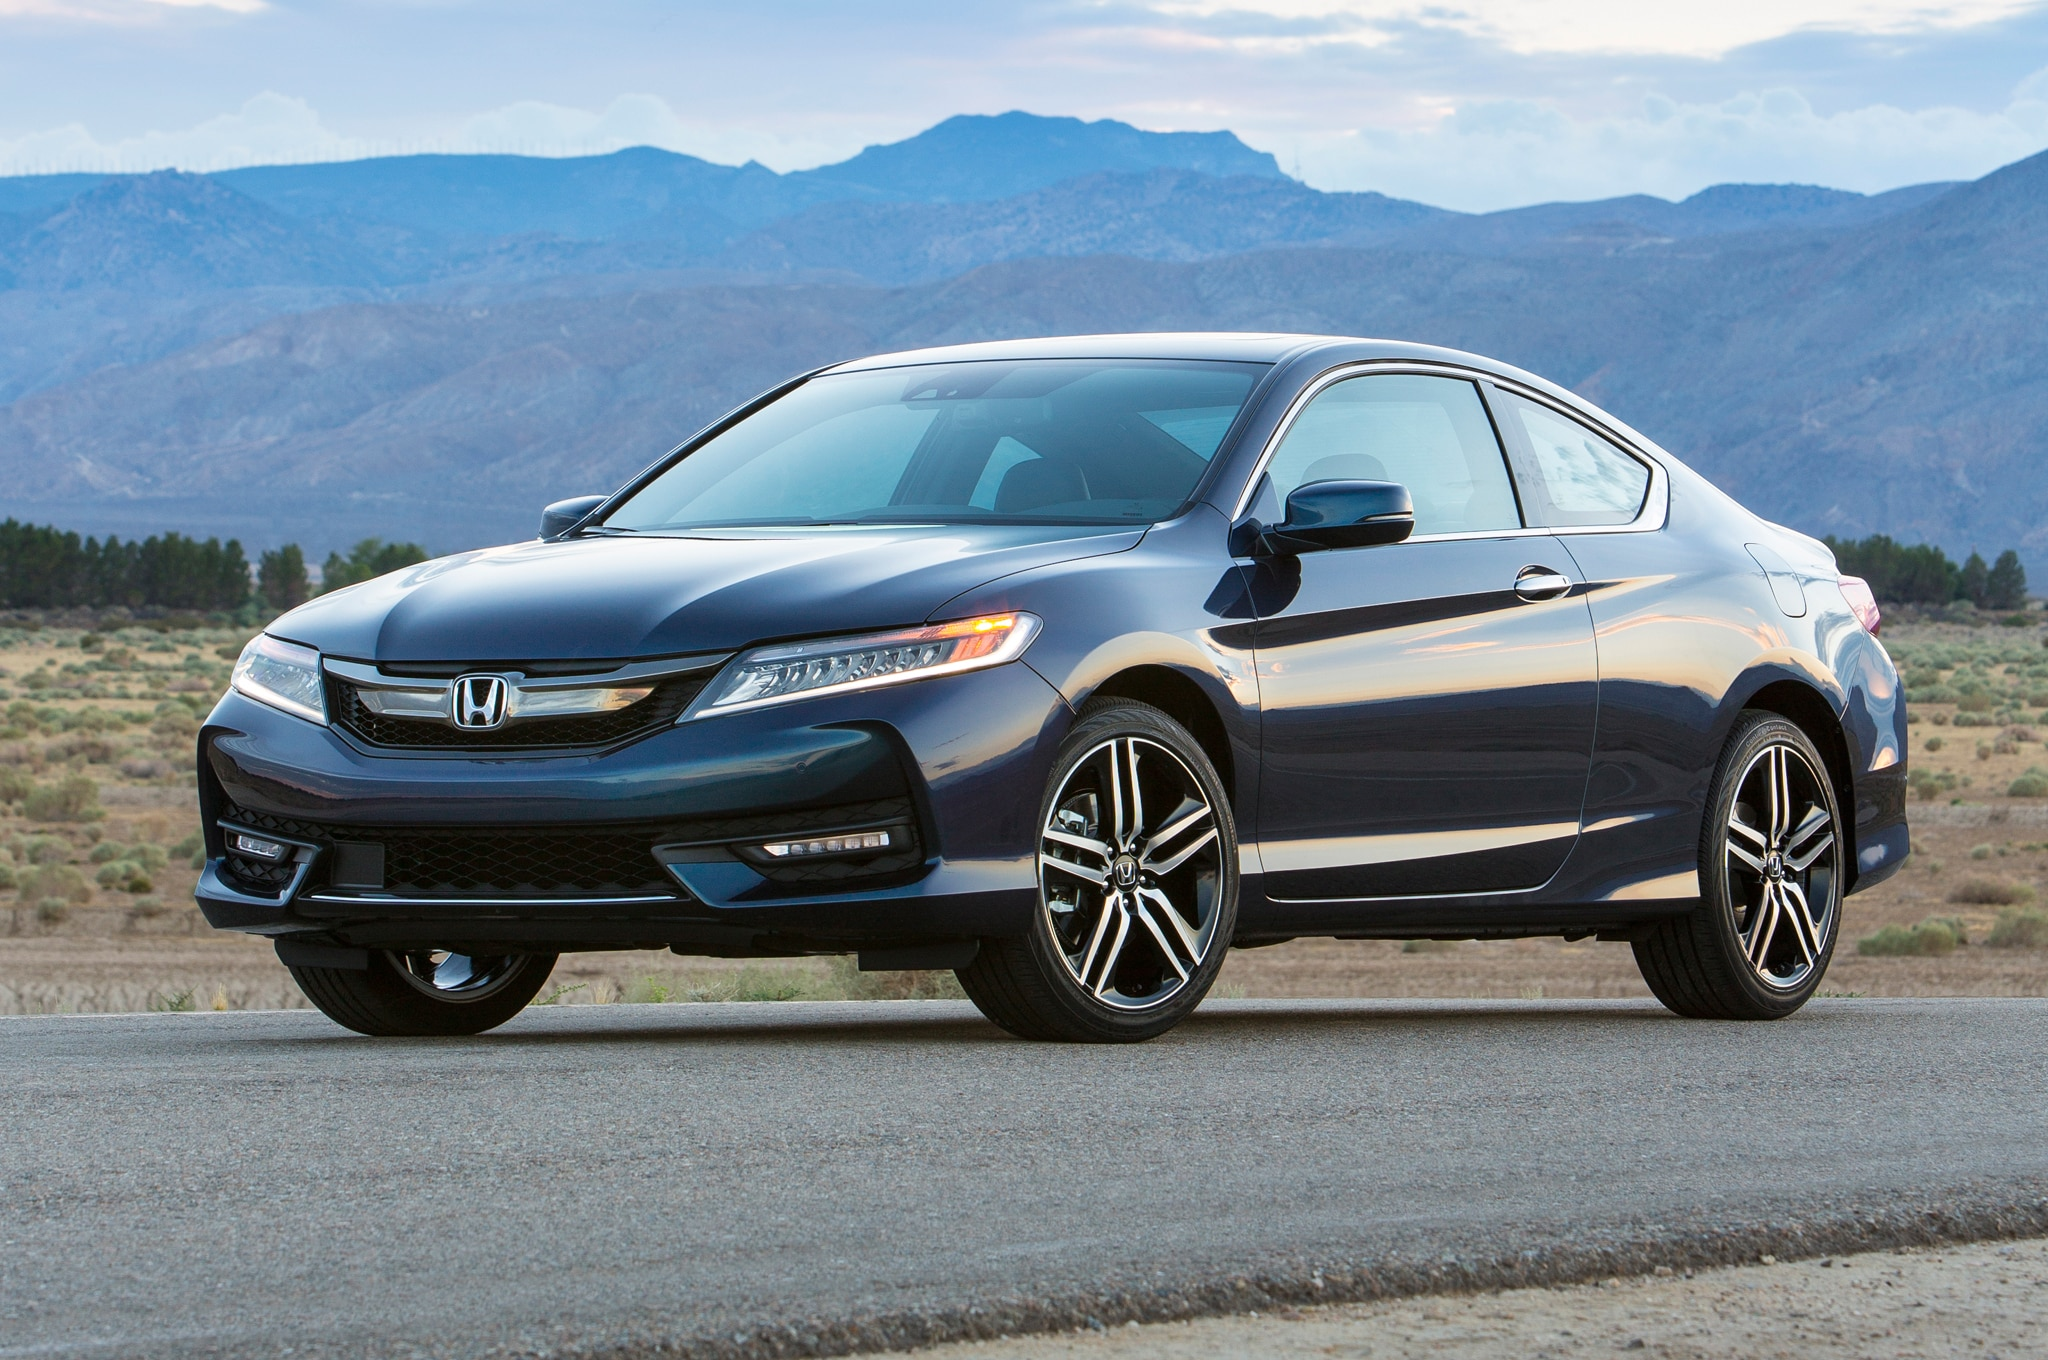 accord honda prices coupe stays rise same base touring front motortrend automobilemag magazine